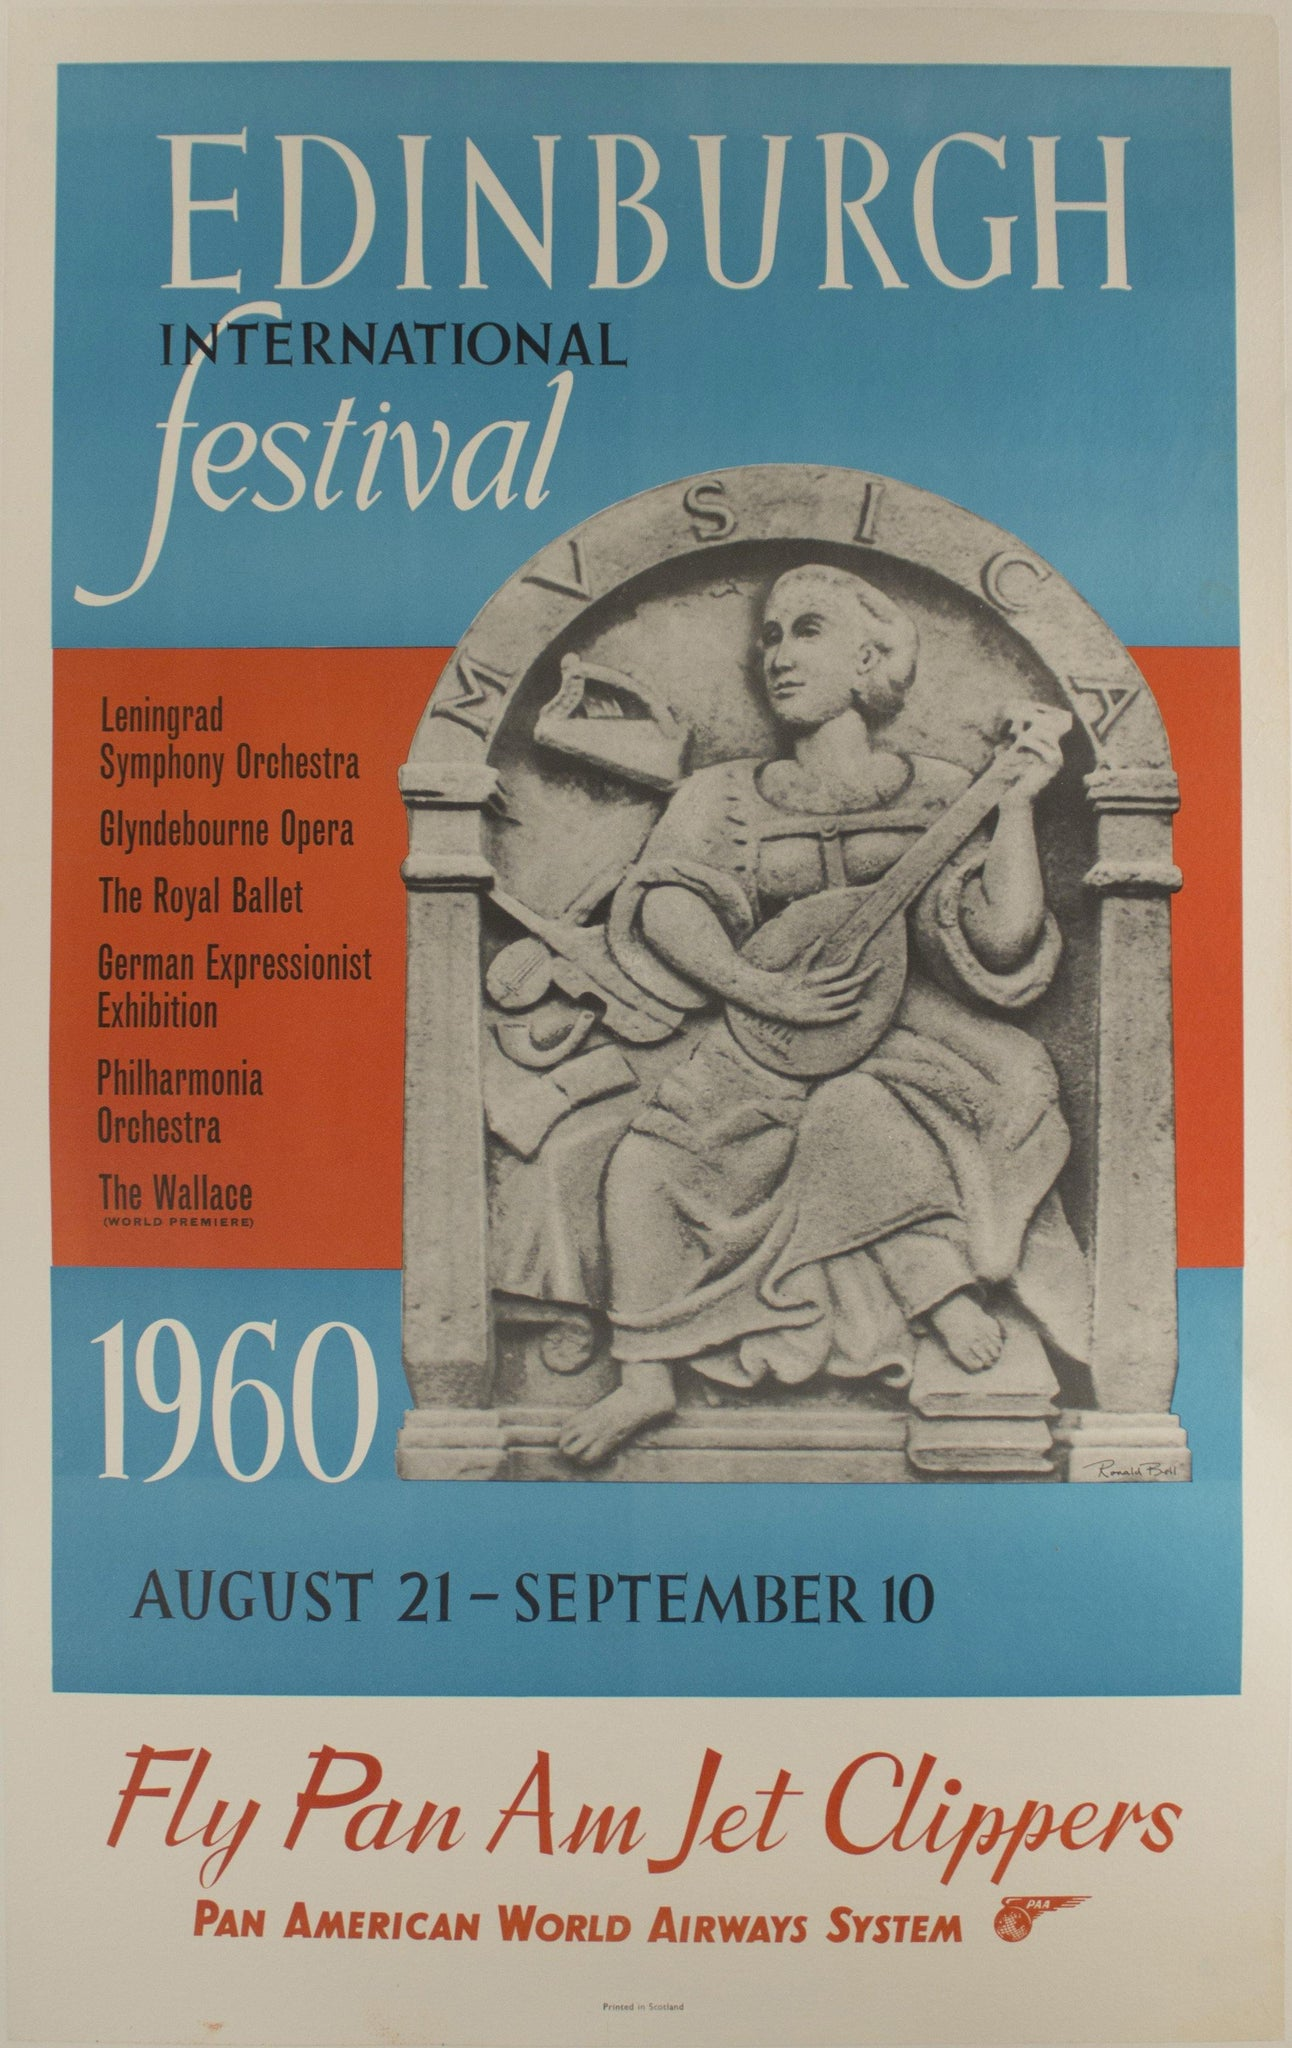 1960 Edinburgh International Festival by Ronald Bell